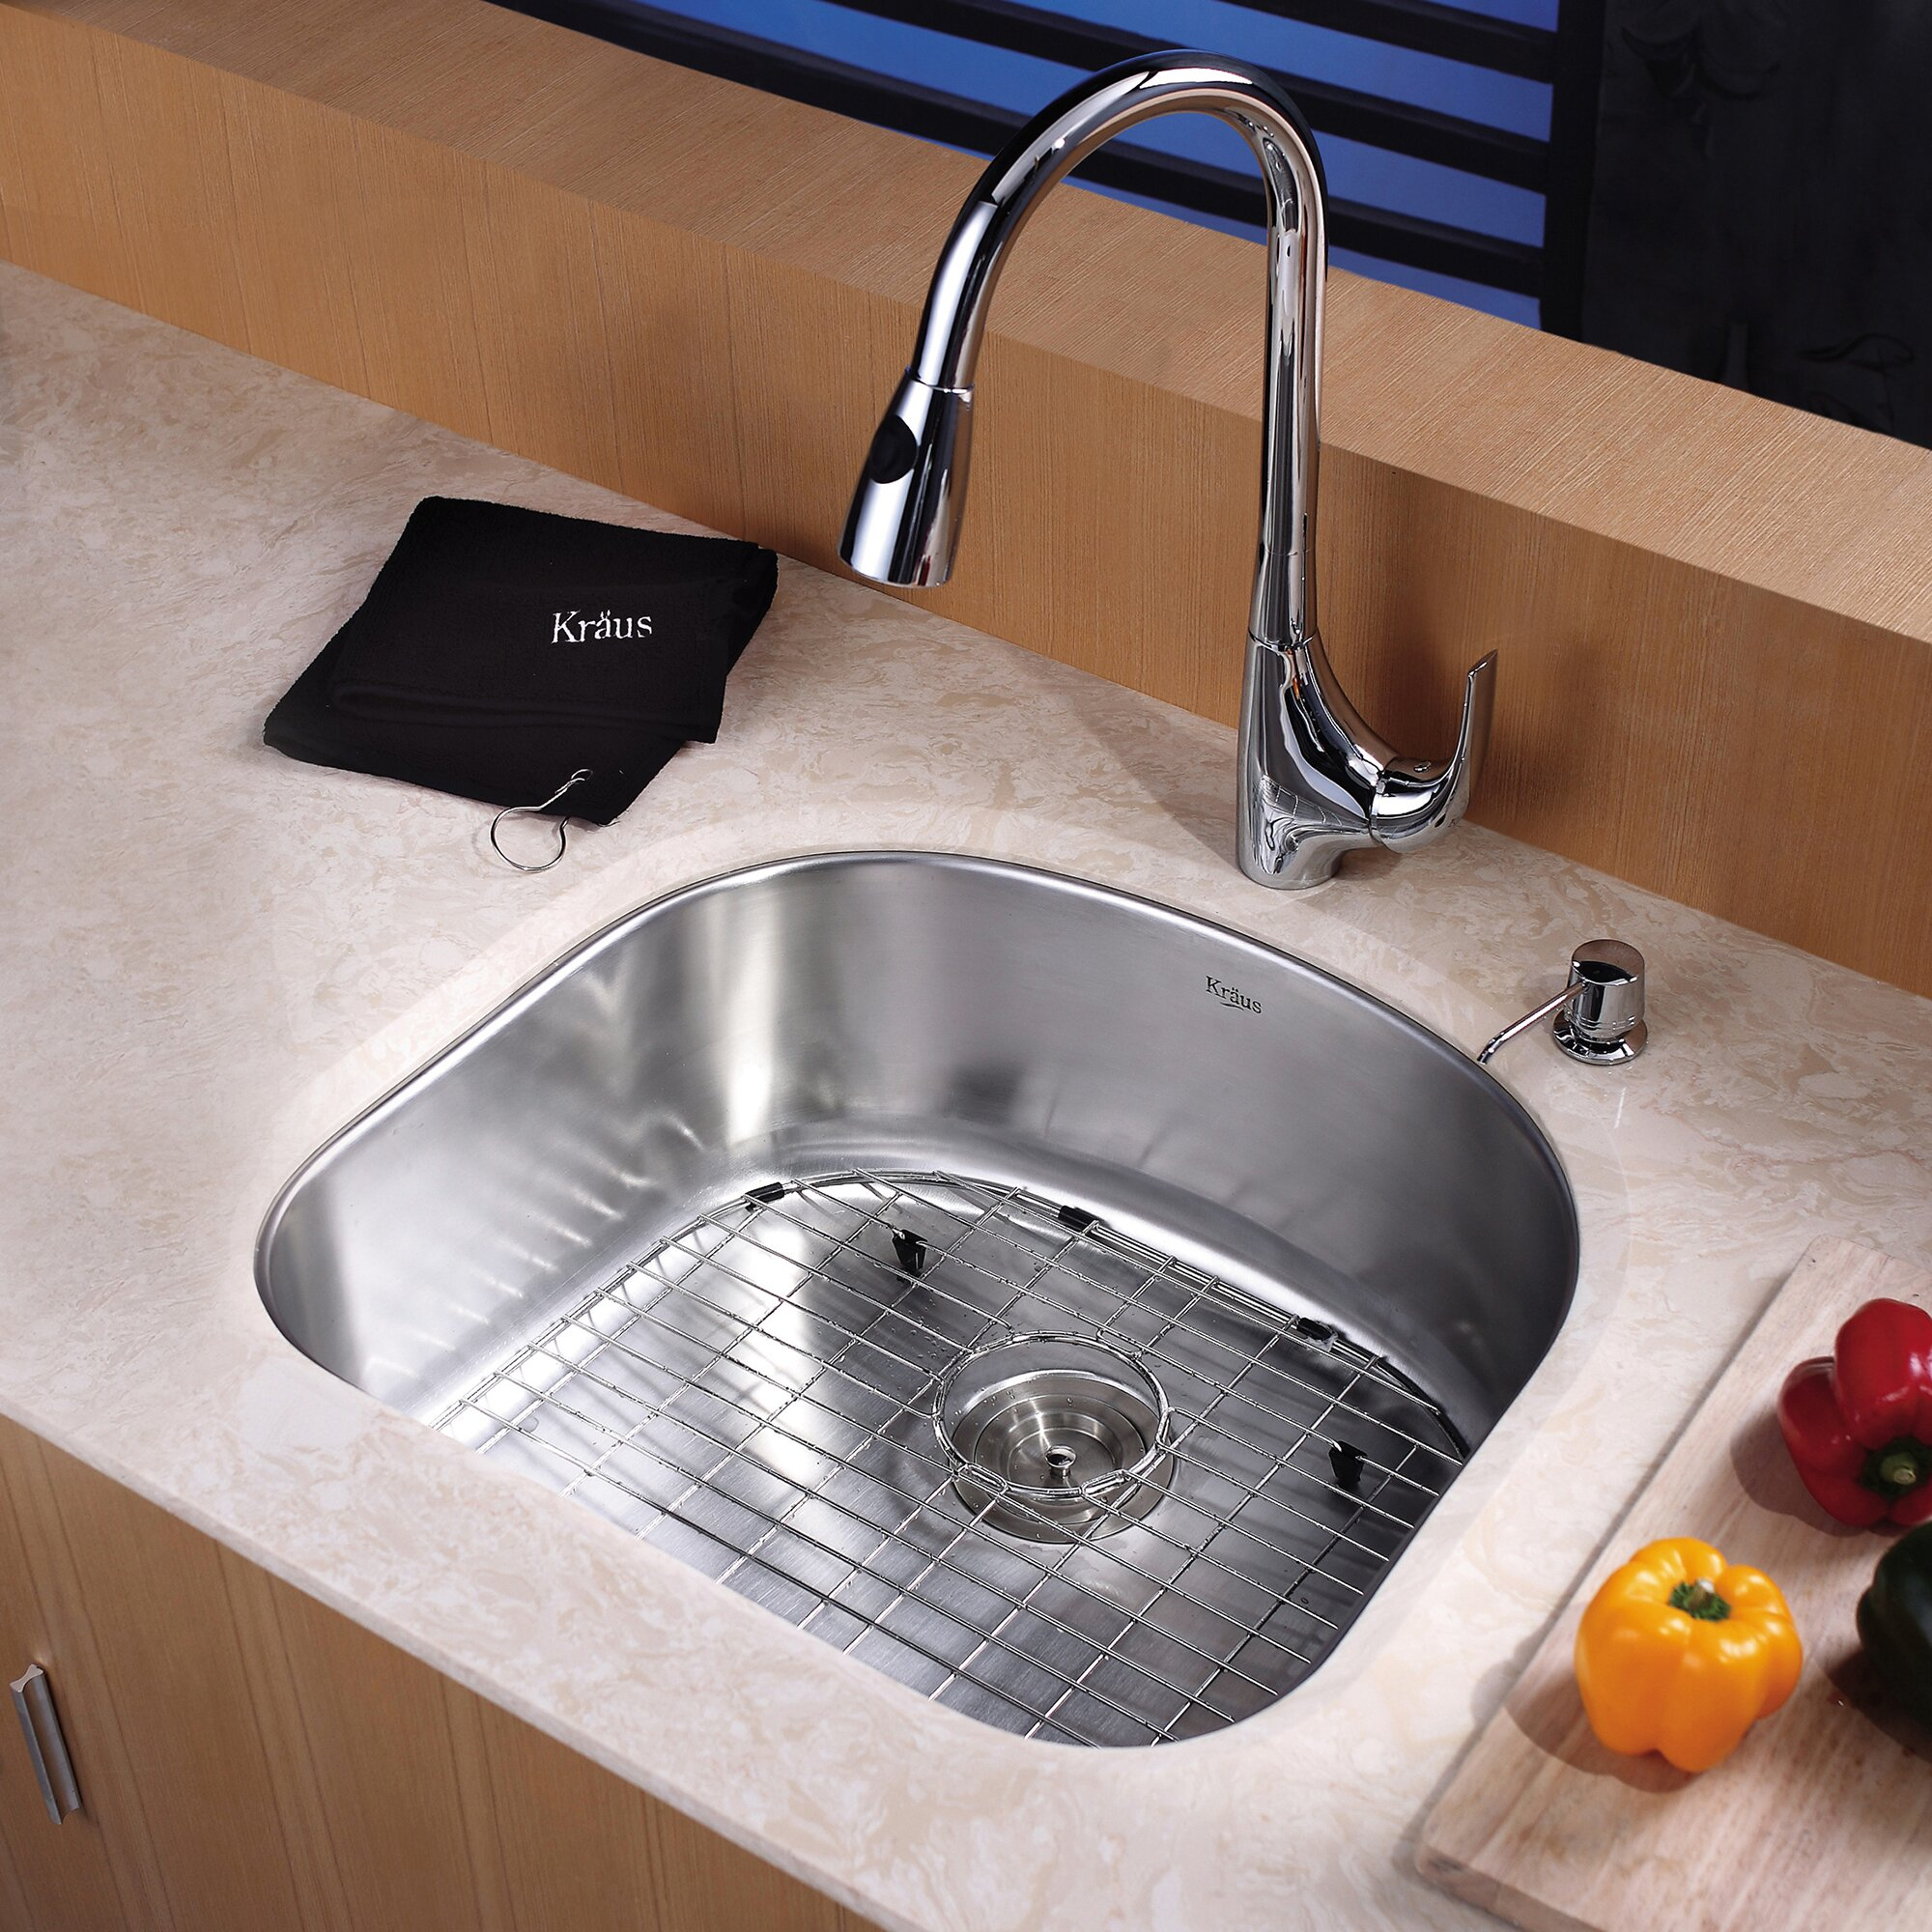 "Kitchen Sink Kraus: Kraus 23.25"" X 20.88"" Undermount Single Bowl Kitchen Sink"